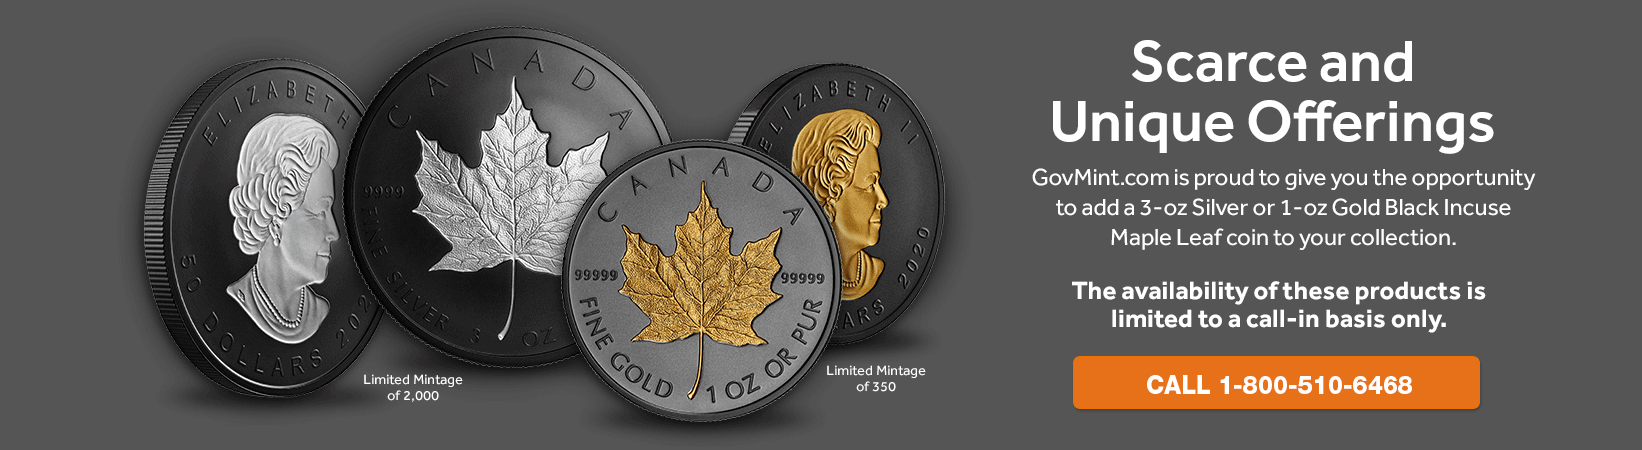 Gold one ounce and silver three ounce rhodium plated incuse maple leaf coins